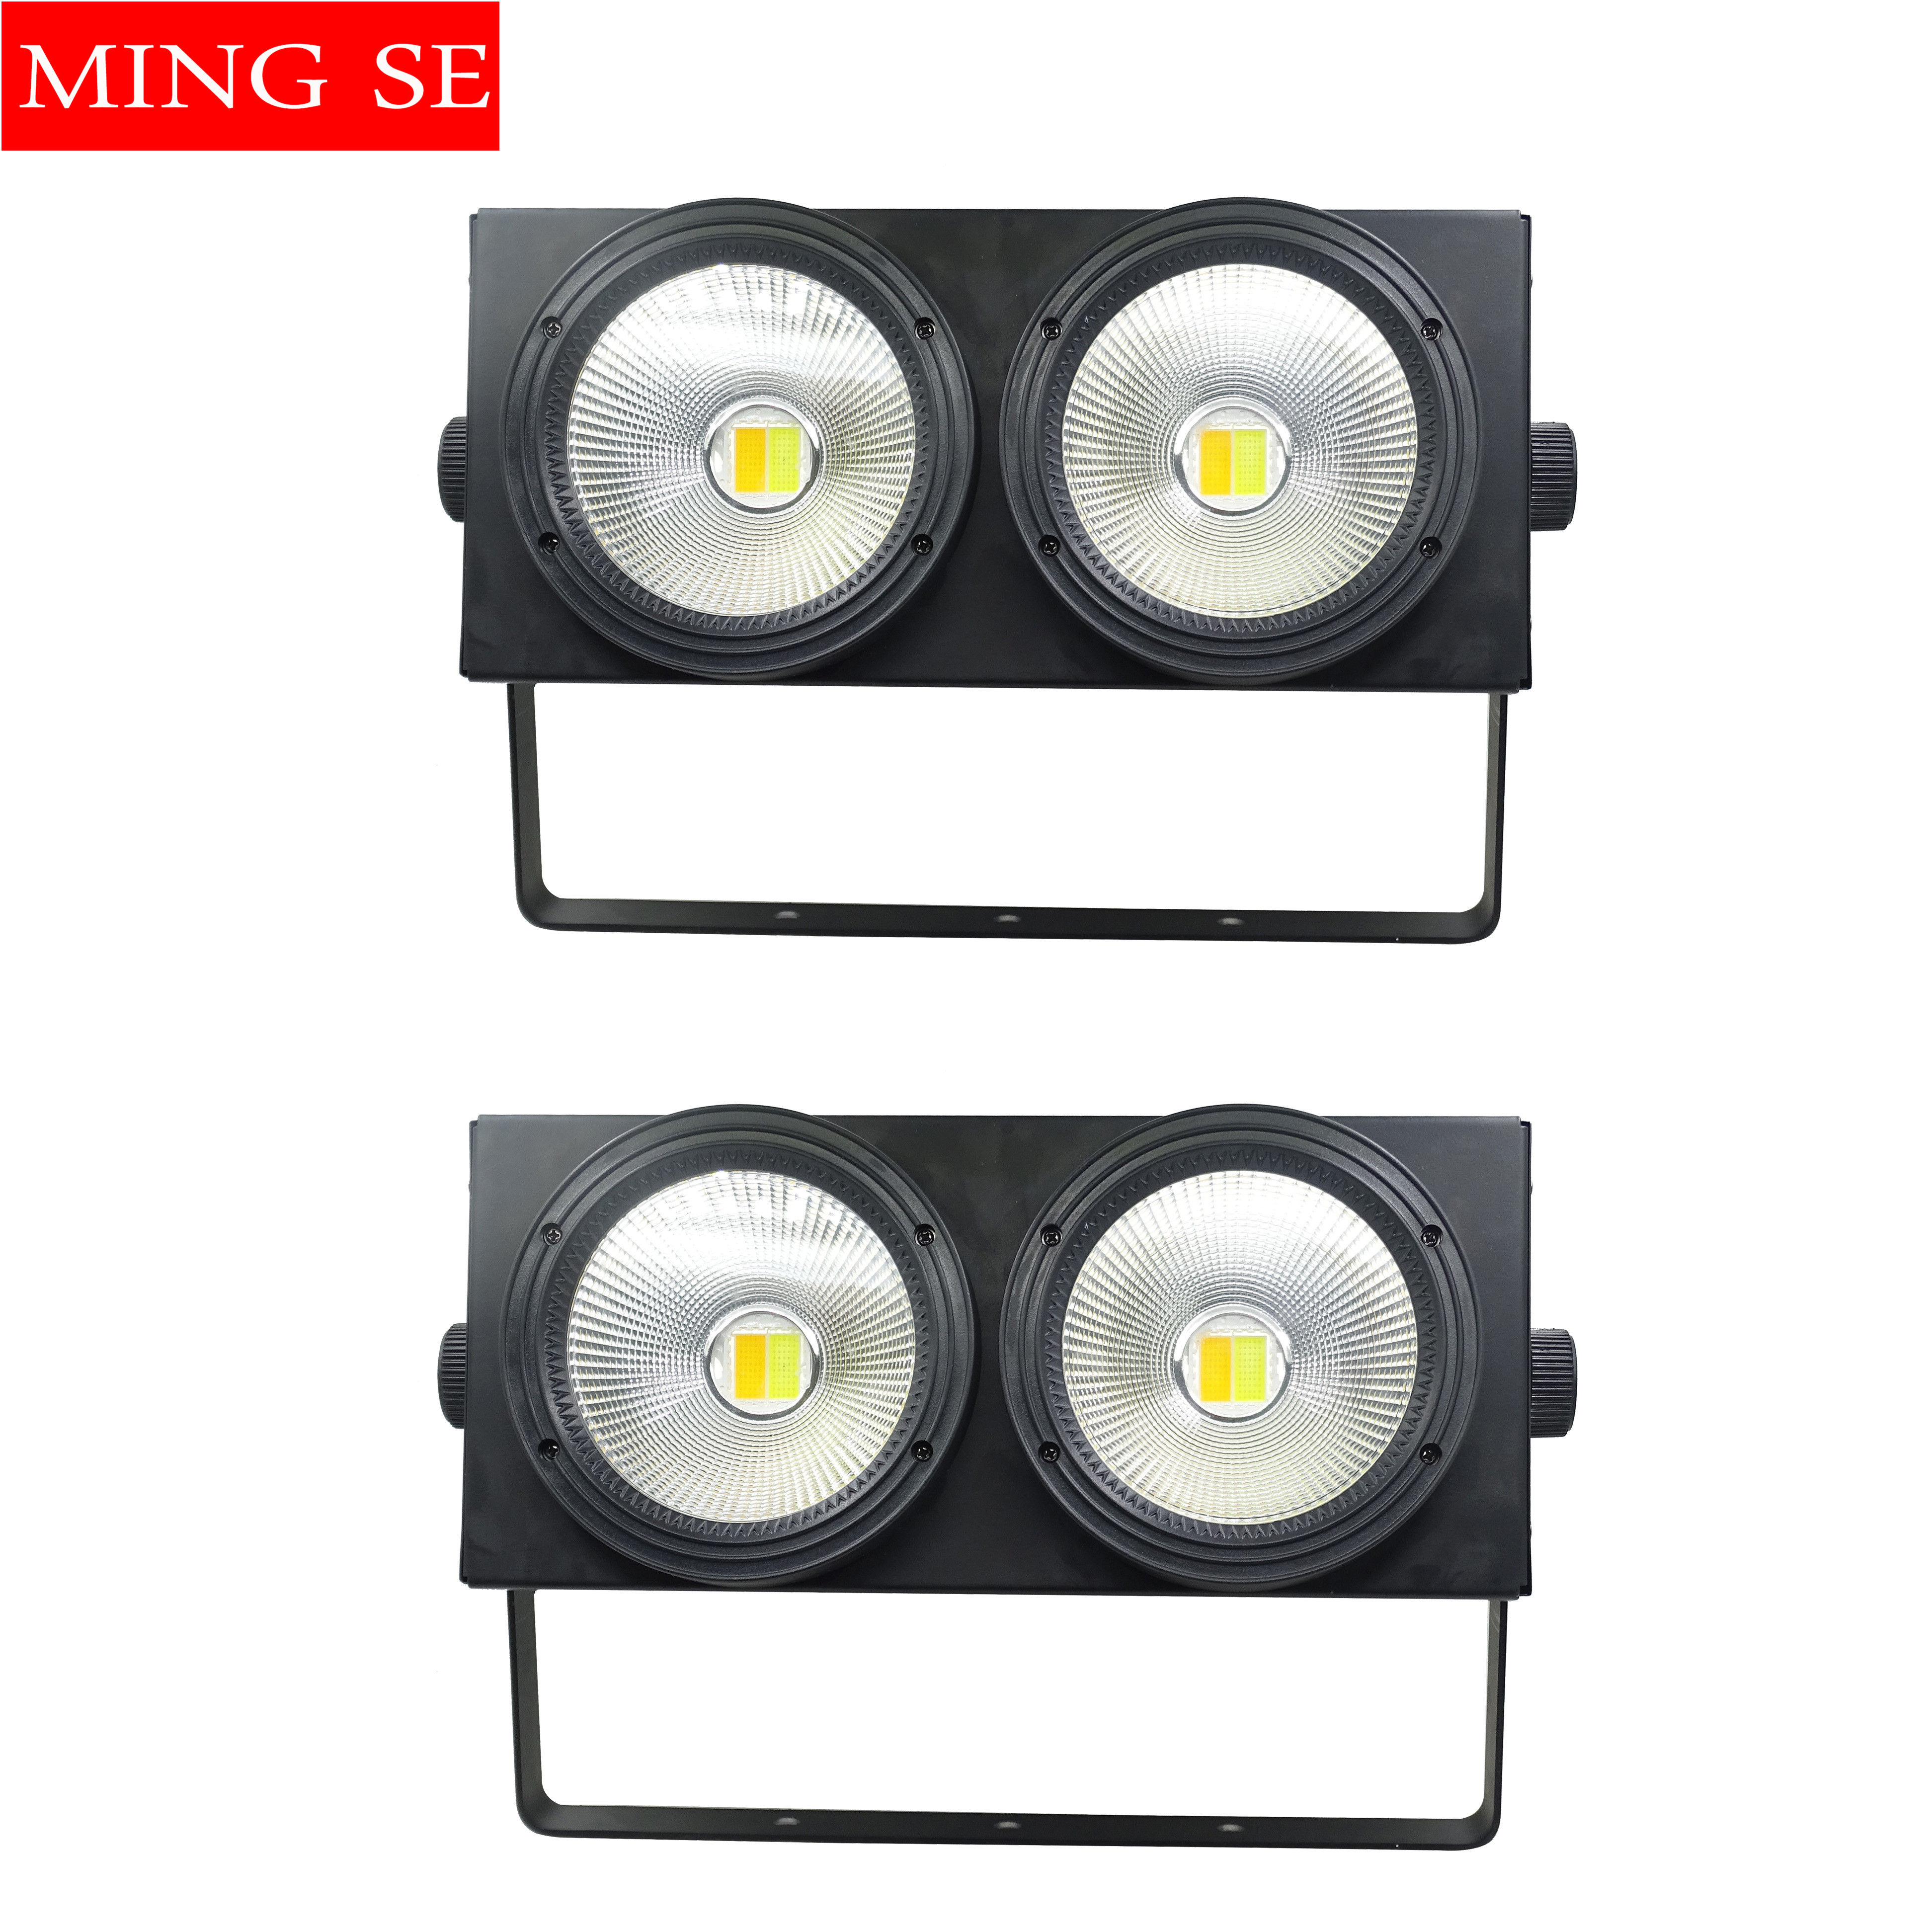 2pcs/lots 2 Eyes LED COB Blinder Light Cold White/Warm White 2in1 COB LEDs Control Optional Individually 2x100W Audience Light